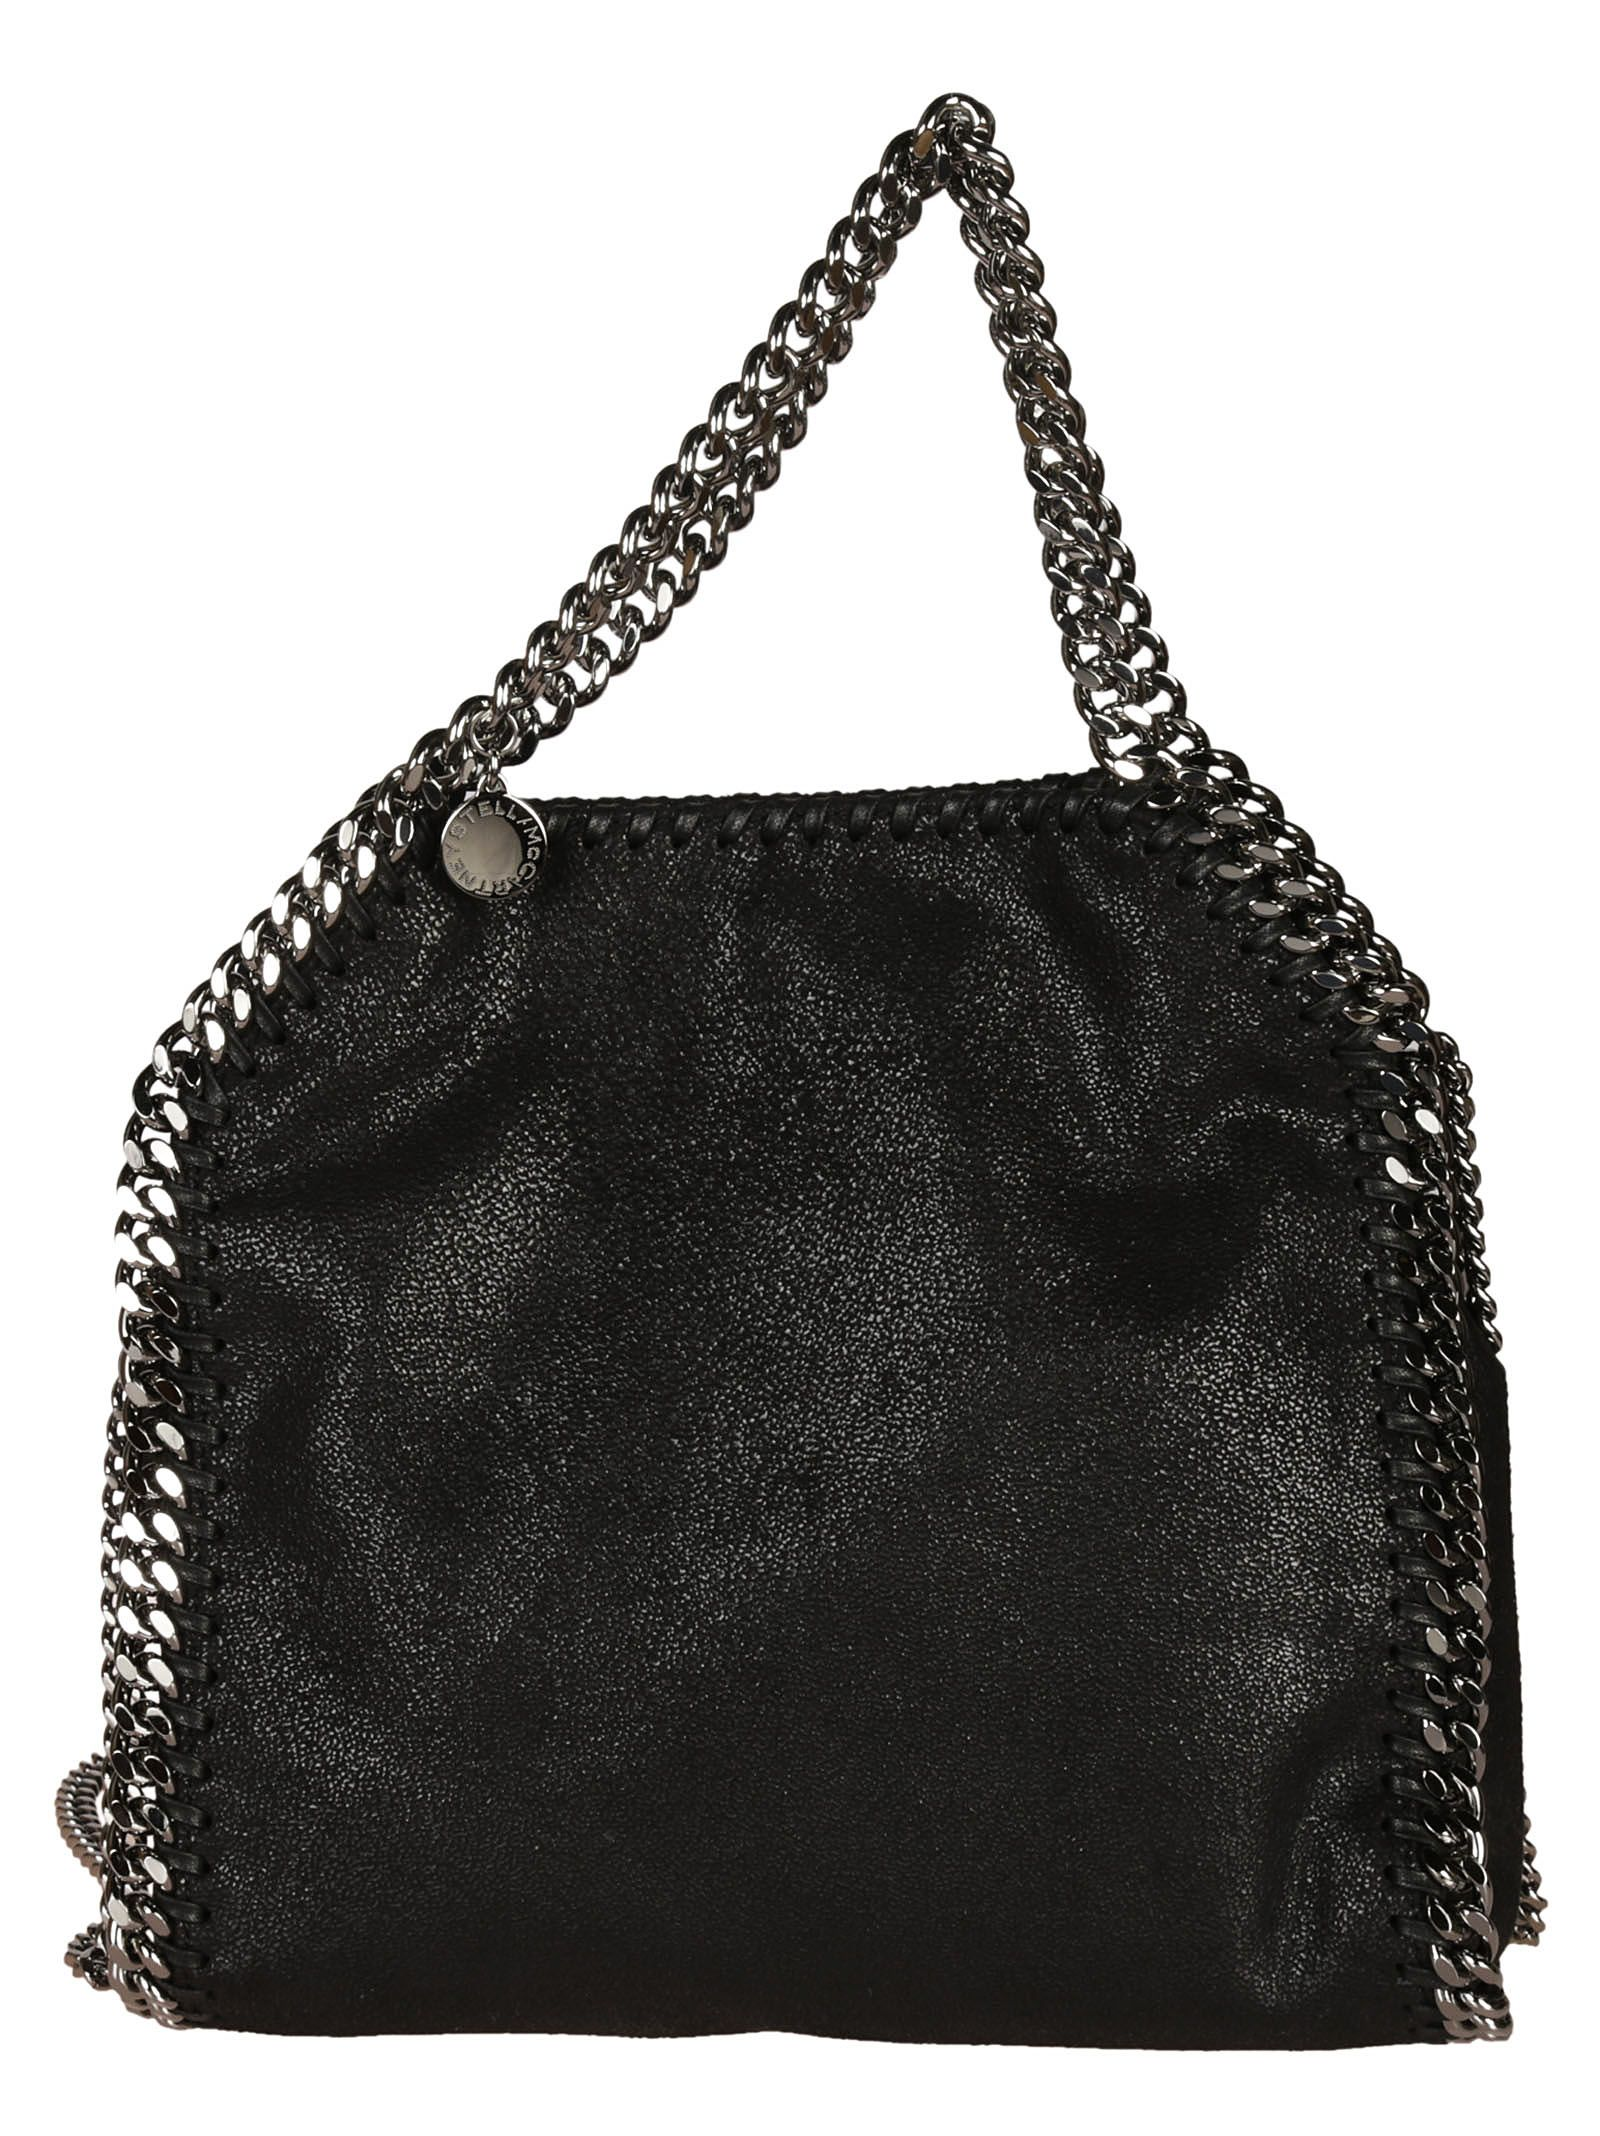 Stella McCartney Stella McCartney Falabella Shaggy Deer Mini Tote ... 803cb6b98ec2a